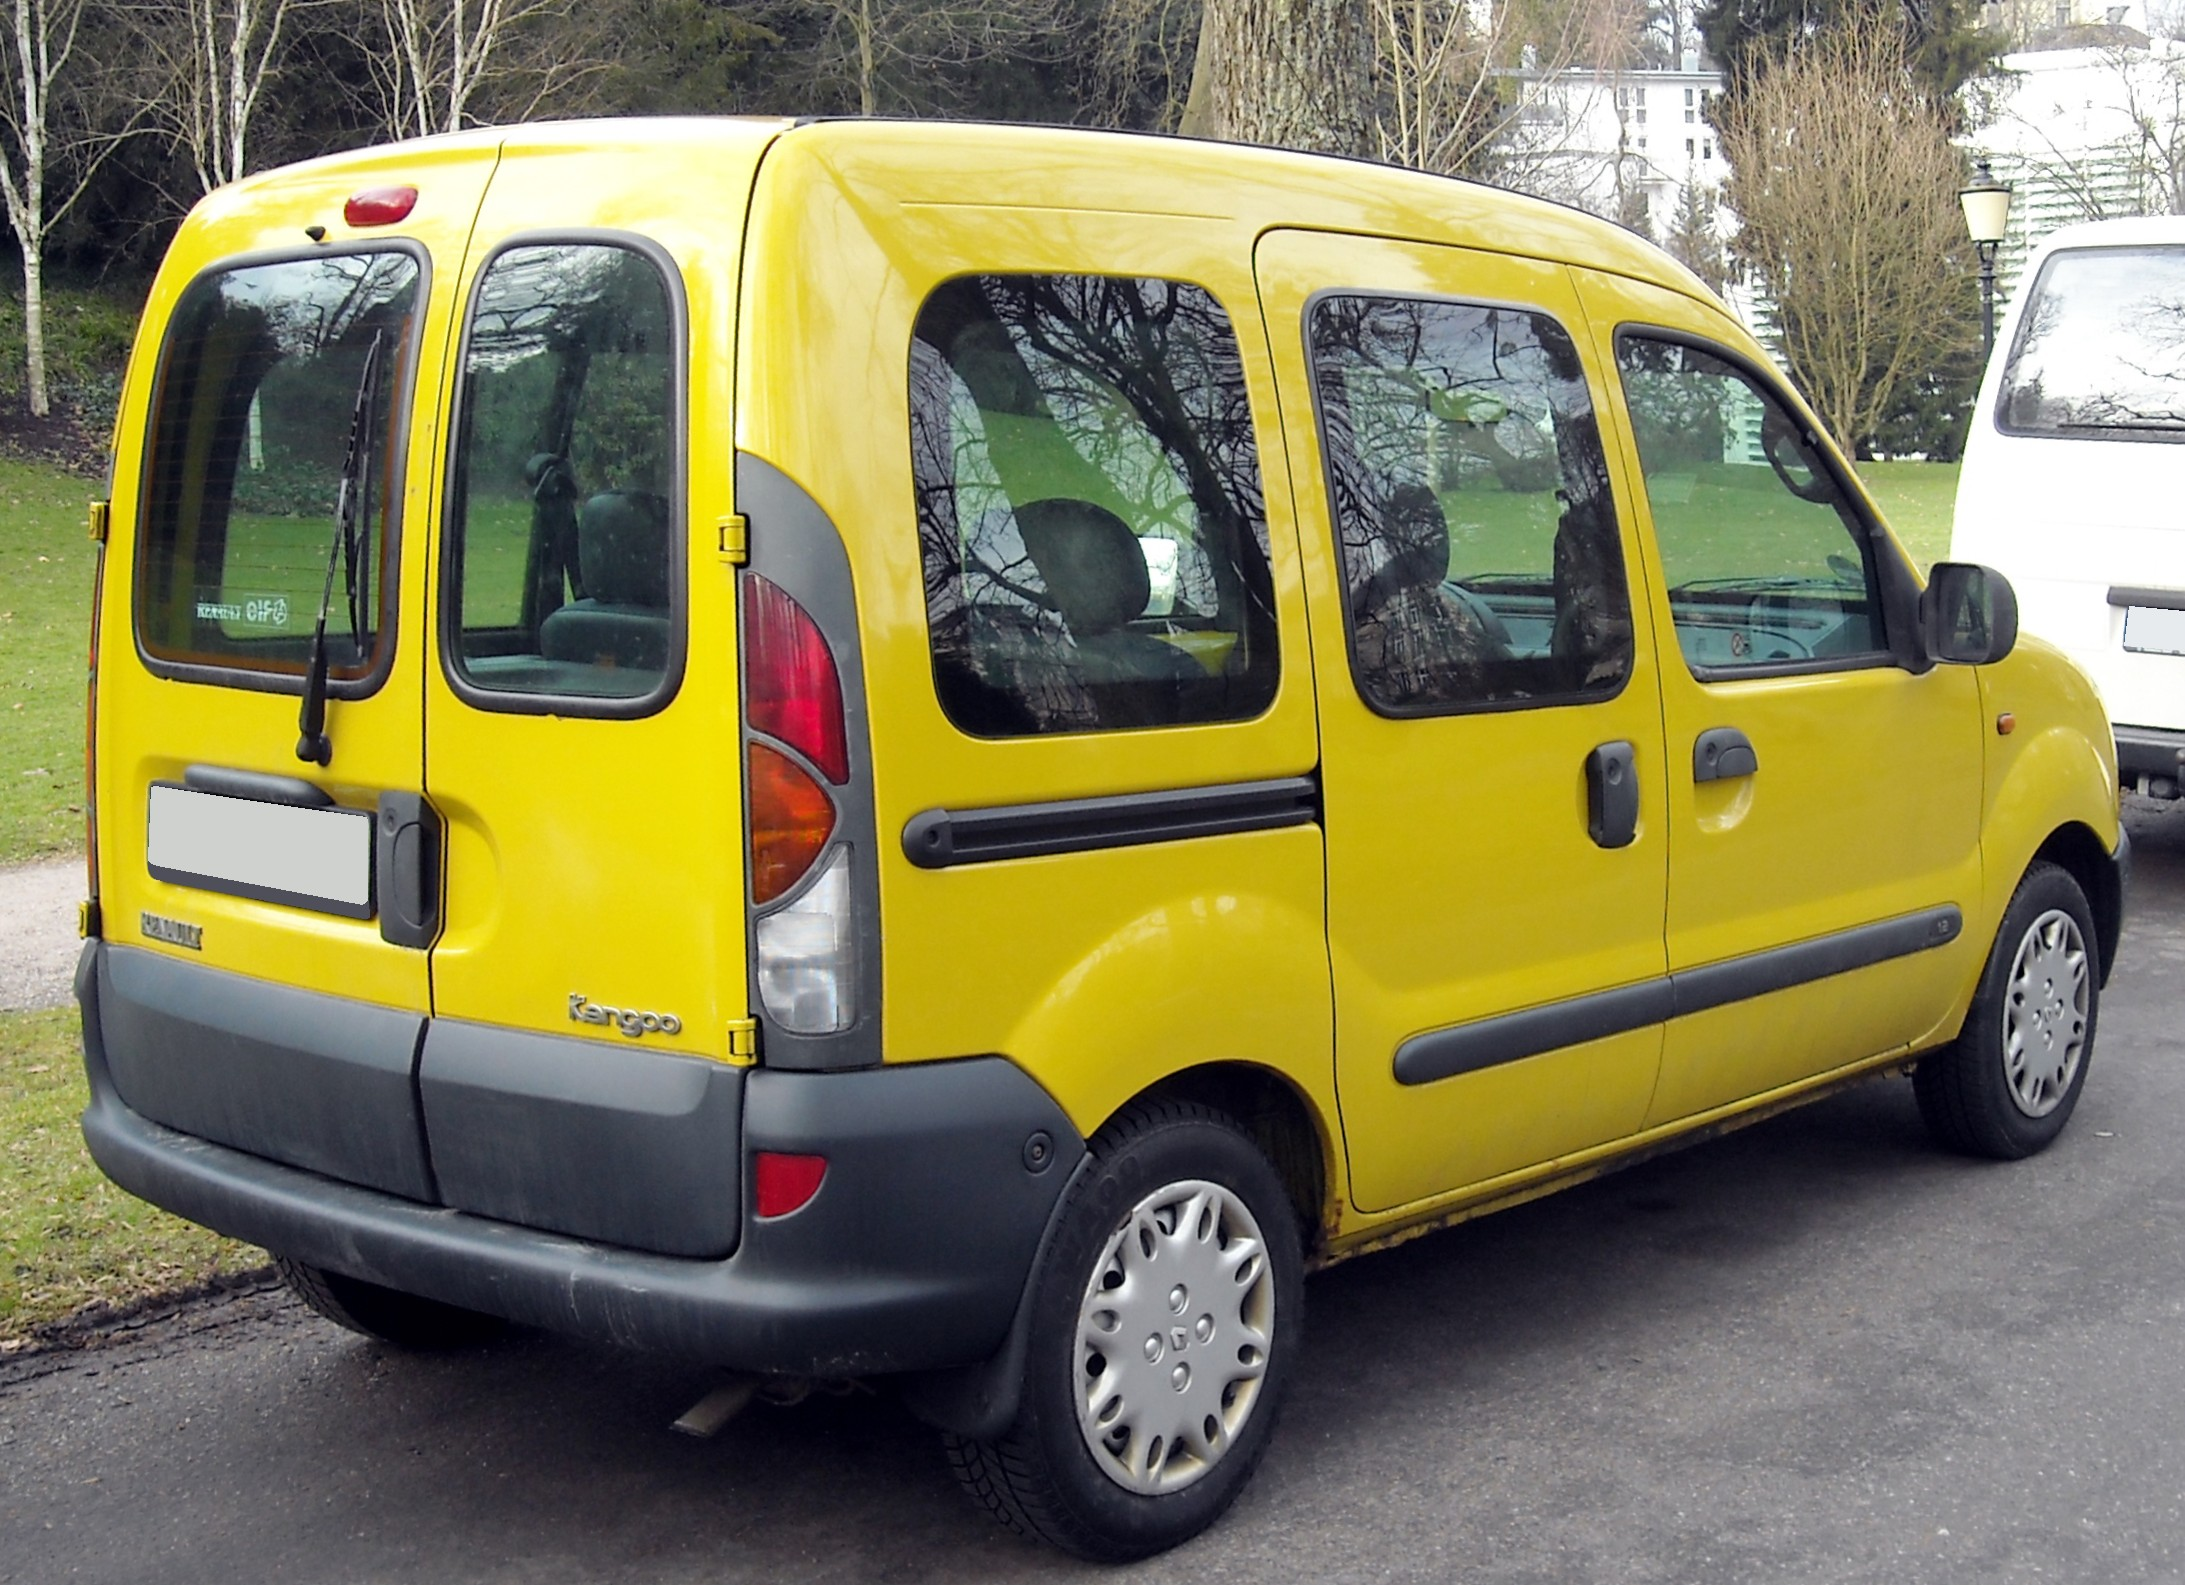 file renault kangoo i rear wikimedia commons. Black Bedroom Furniture Sets. Home Design Ideas